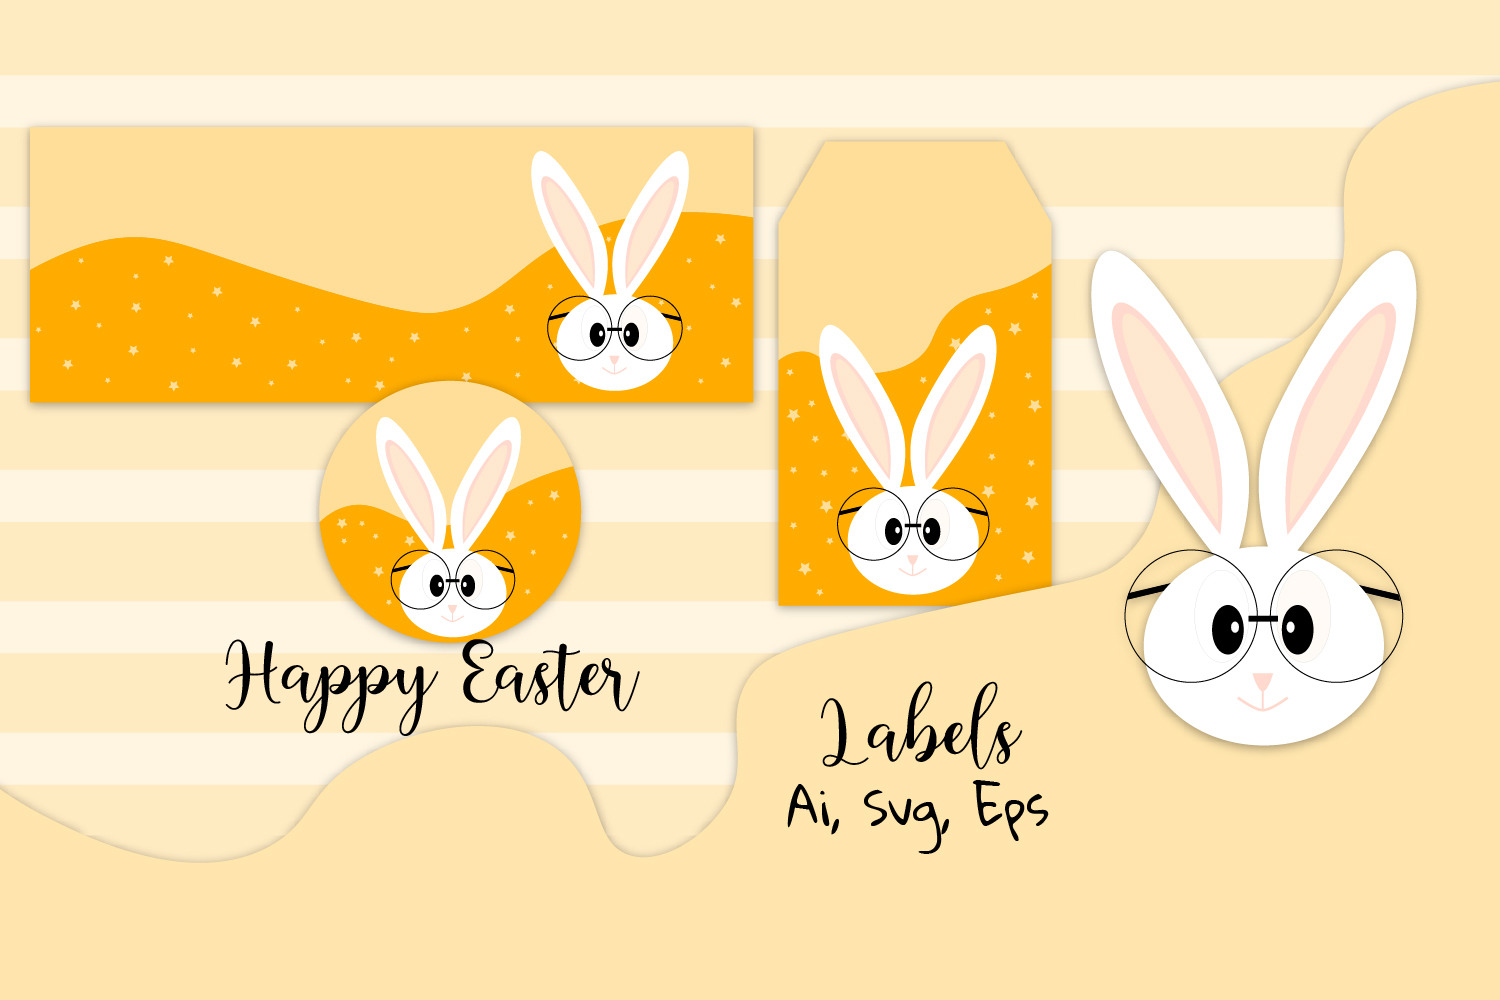 Download Free Editable Easter Labels Easter Bunny Graphic By Igraphic Studio for Cricut Explore, Silhouette and other cutting machines.